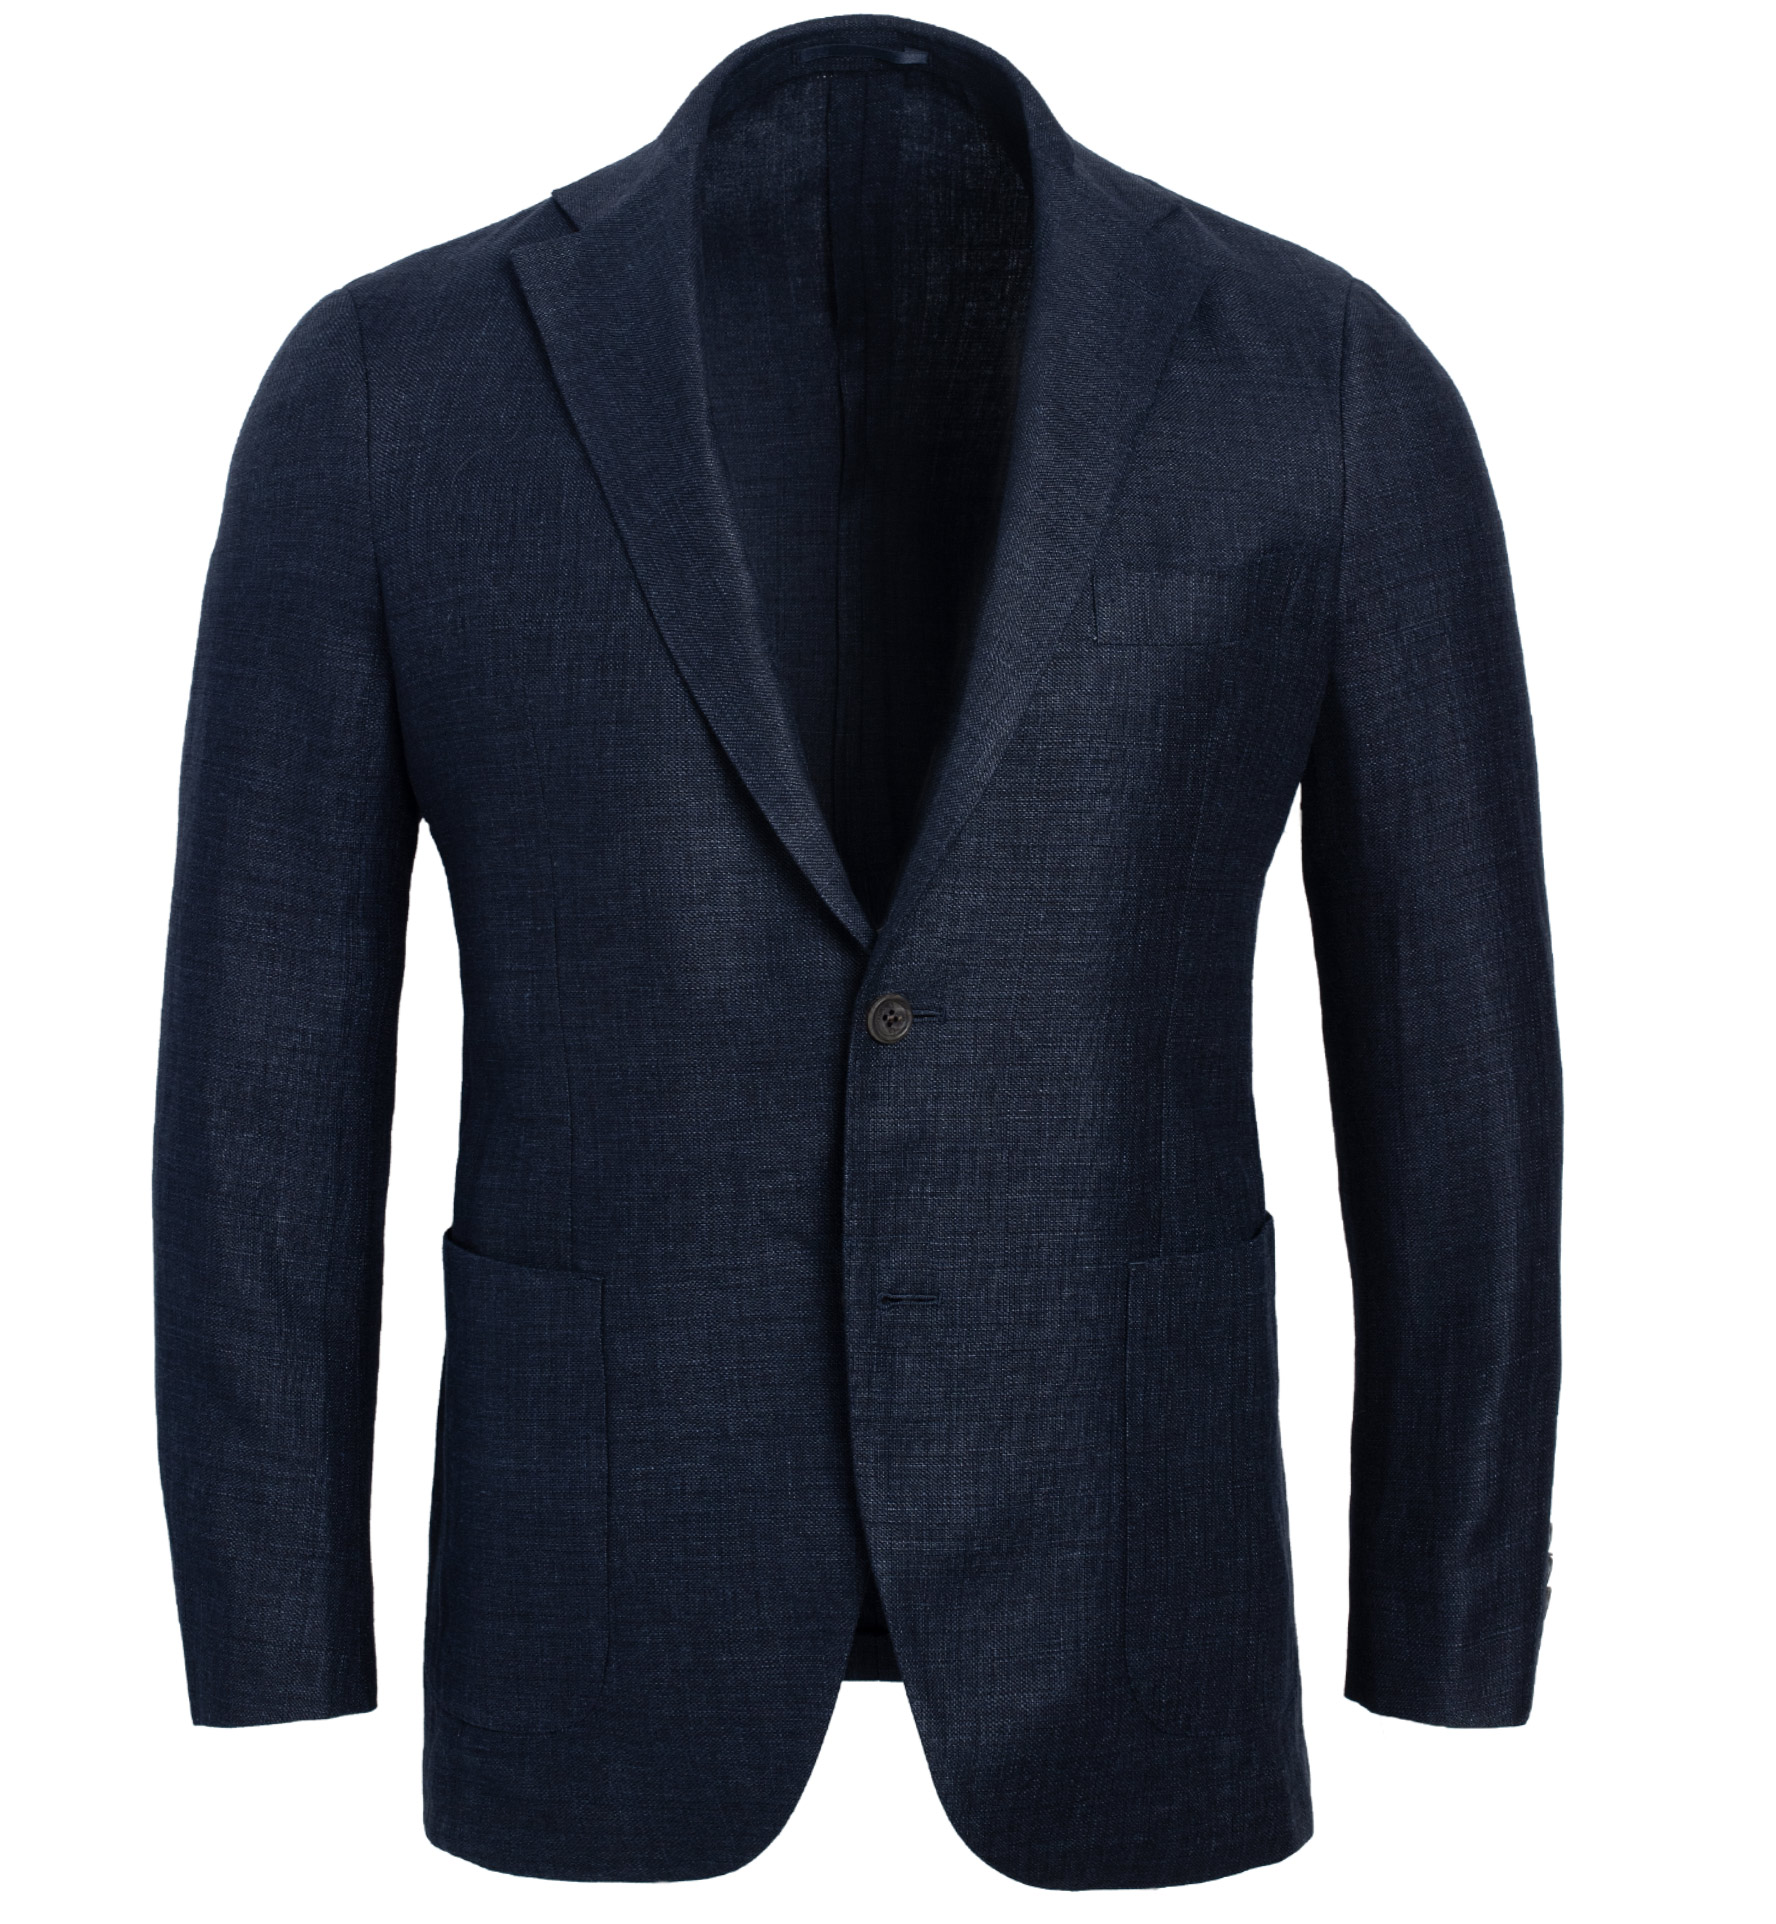 Zoom Image of Bedford Navy Wool and Linen Twill Jacket